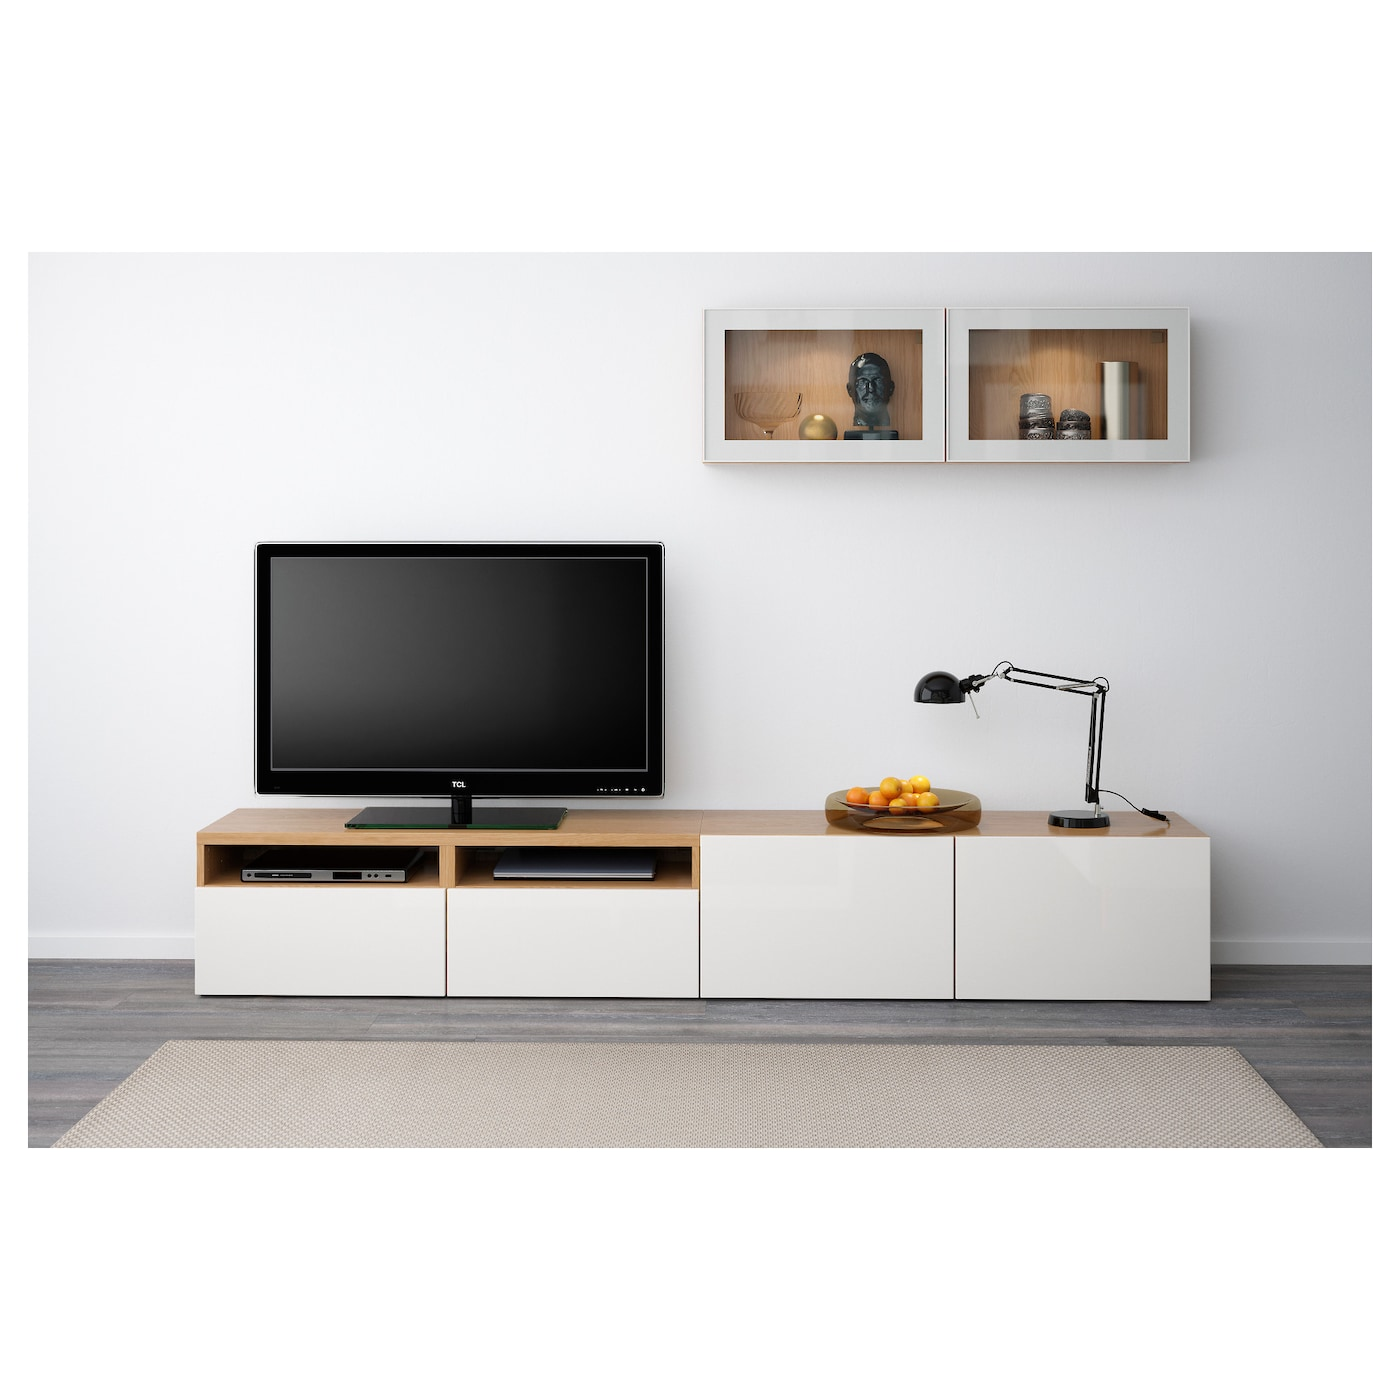 ikea besta doors best shelf unit with glass doors walnut effect light best tv storage. Black Bedroom Furniture Sets. Home Design Ideas